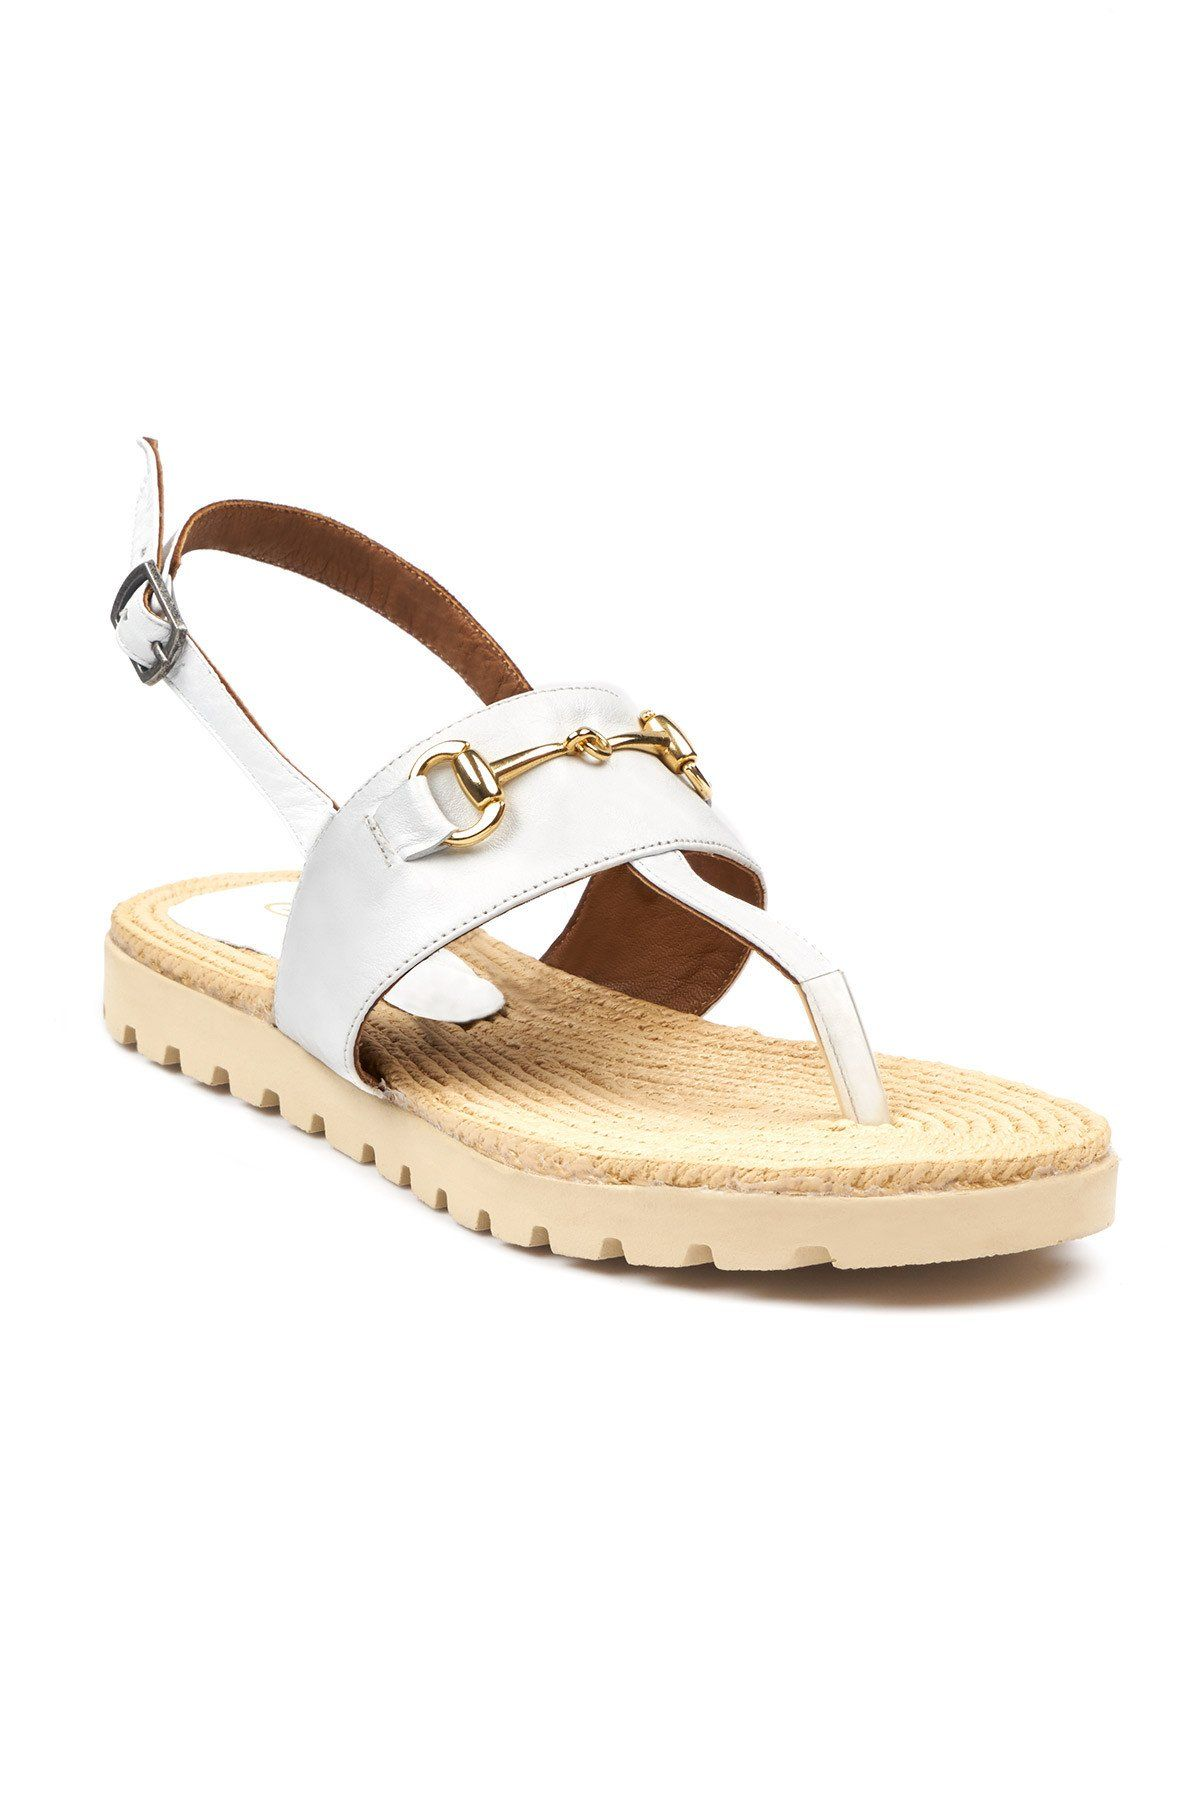 be06f95a5dd25 Leilani | Products | Leather sandals, Sandals, Ankle strap